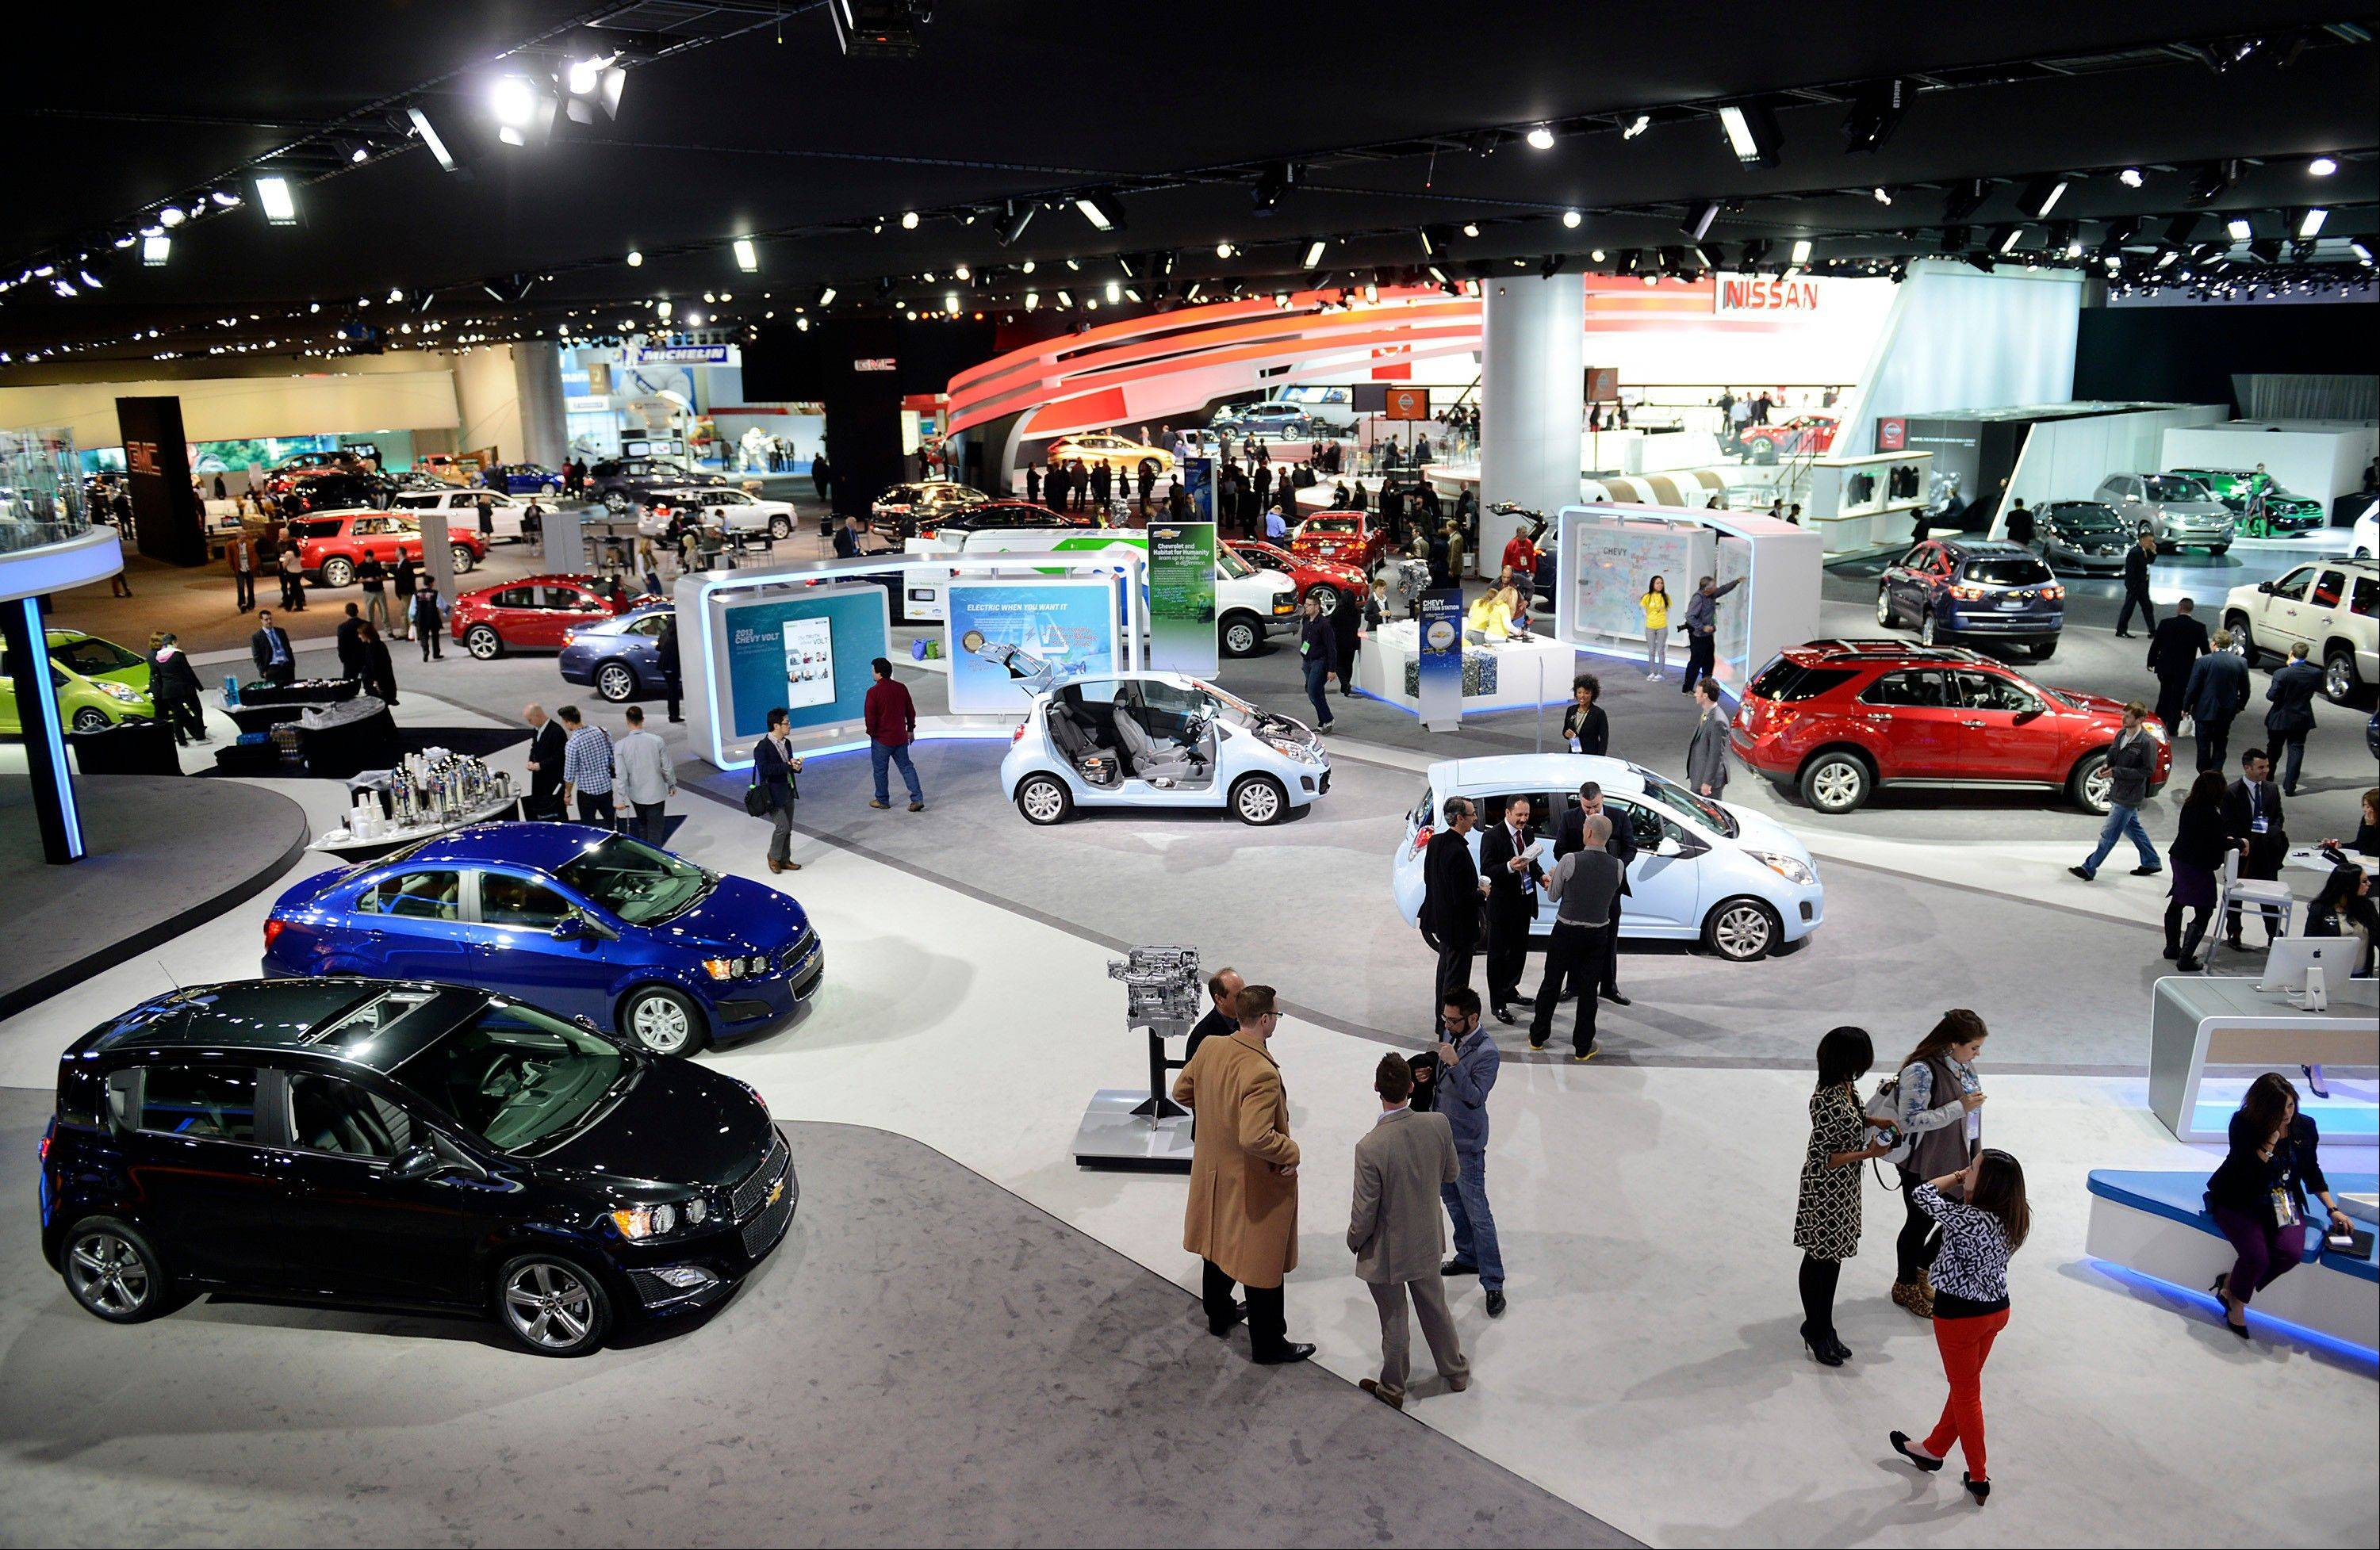 Attendees visit booths during the 2013 North American International Auto Show (NAIAS) in Detroit, Michigan, U.S., on Tuesday, Jan. 15, 2013. The Detroit auto show runs through Jan. 27 and will display over 500 vehicles, representing the most innovative designs in the world.